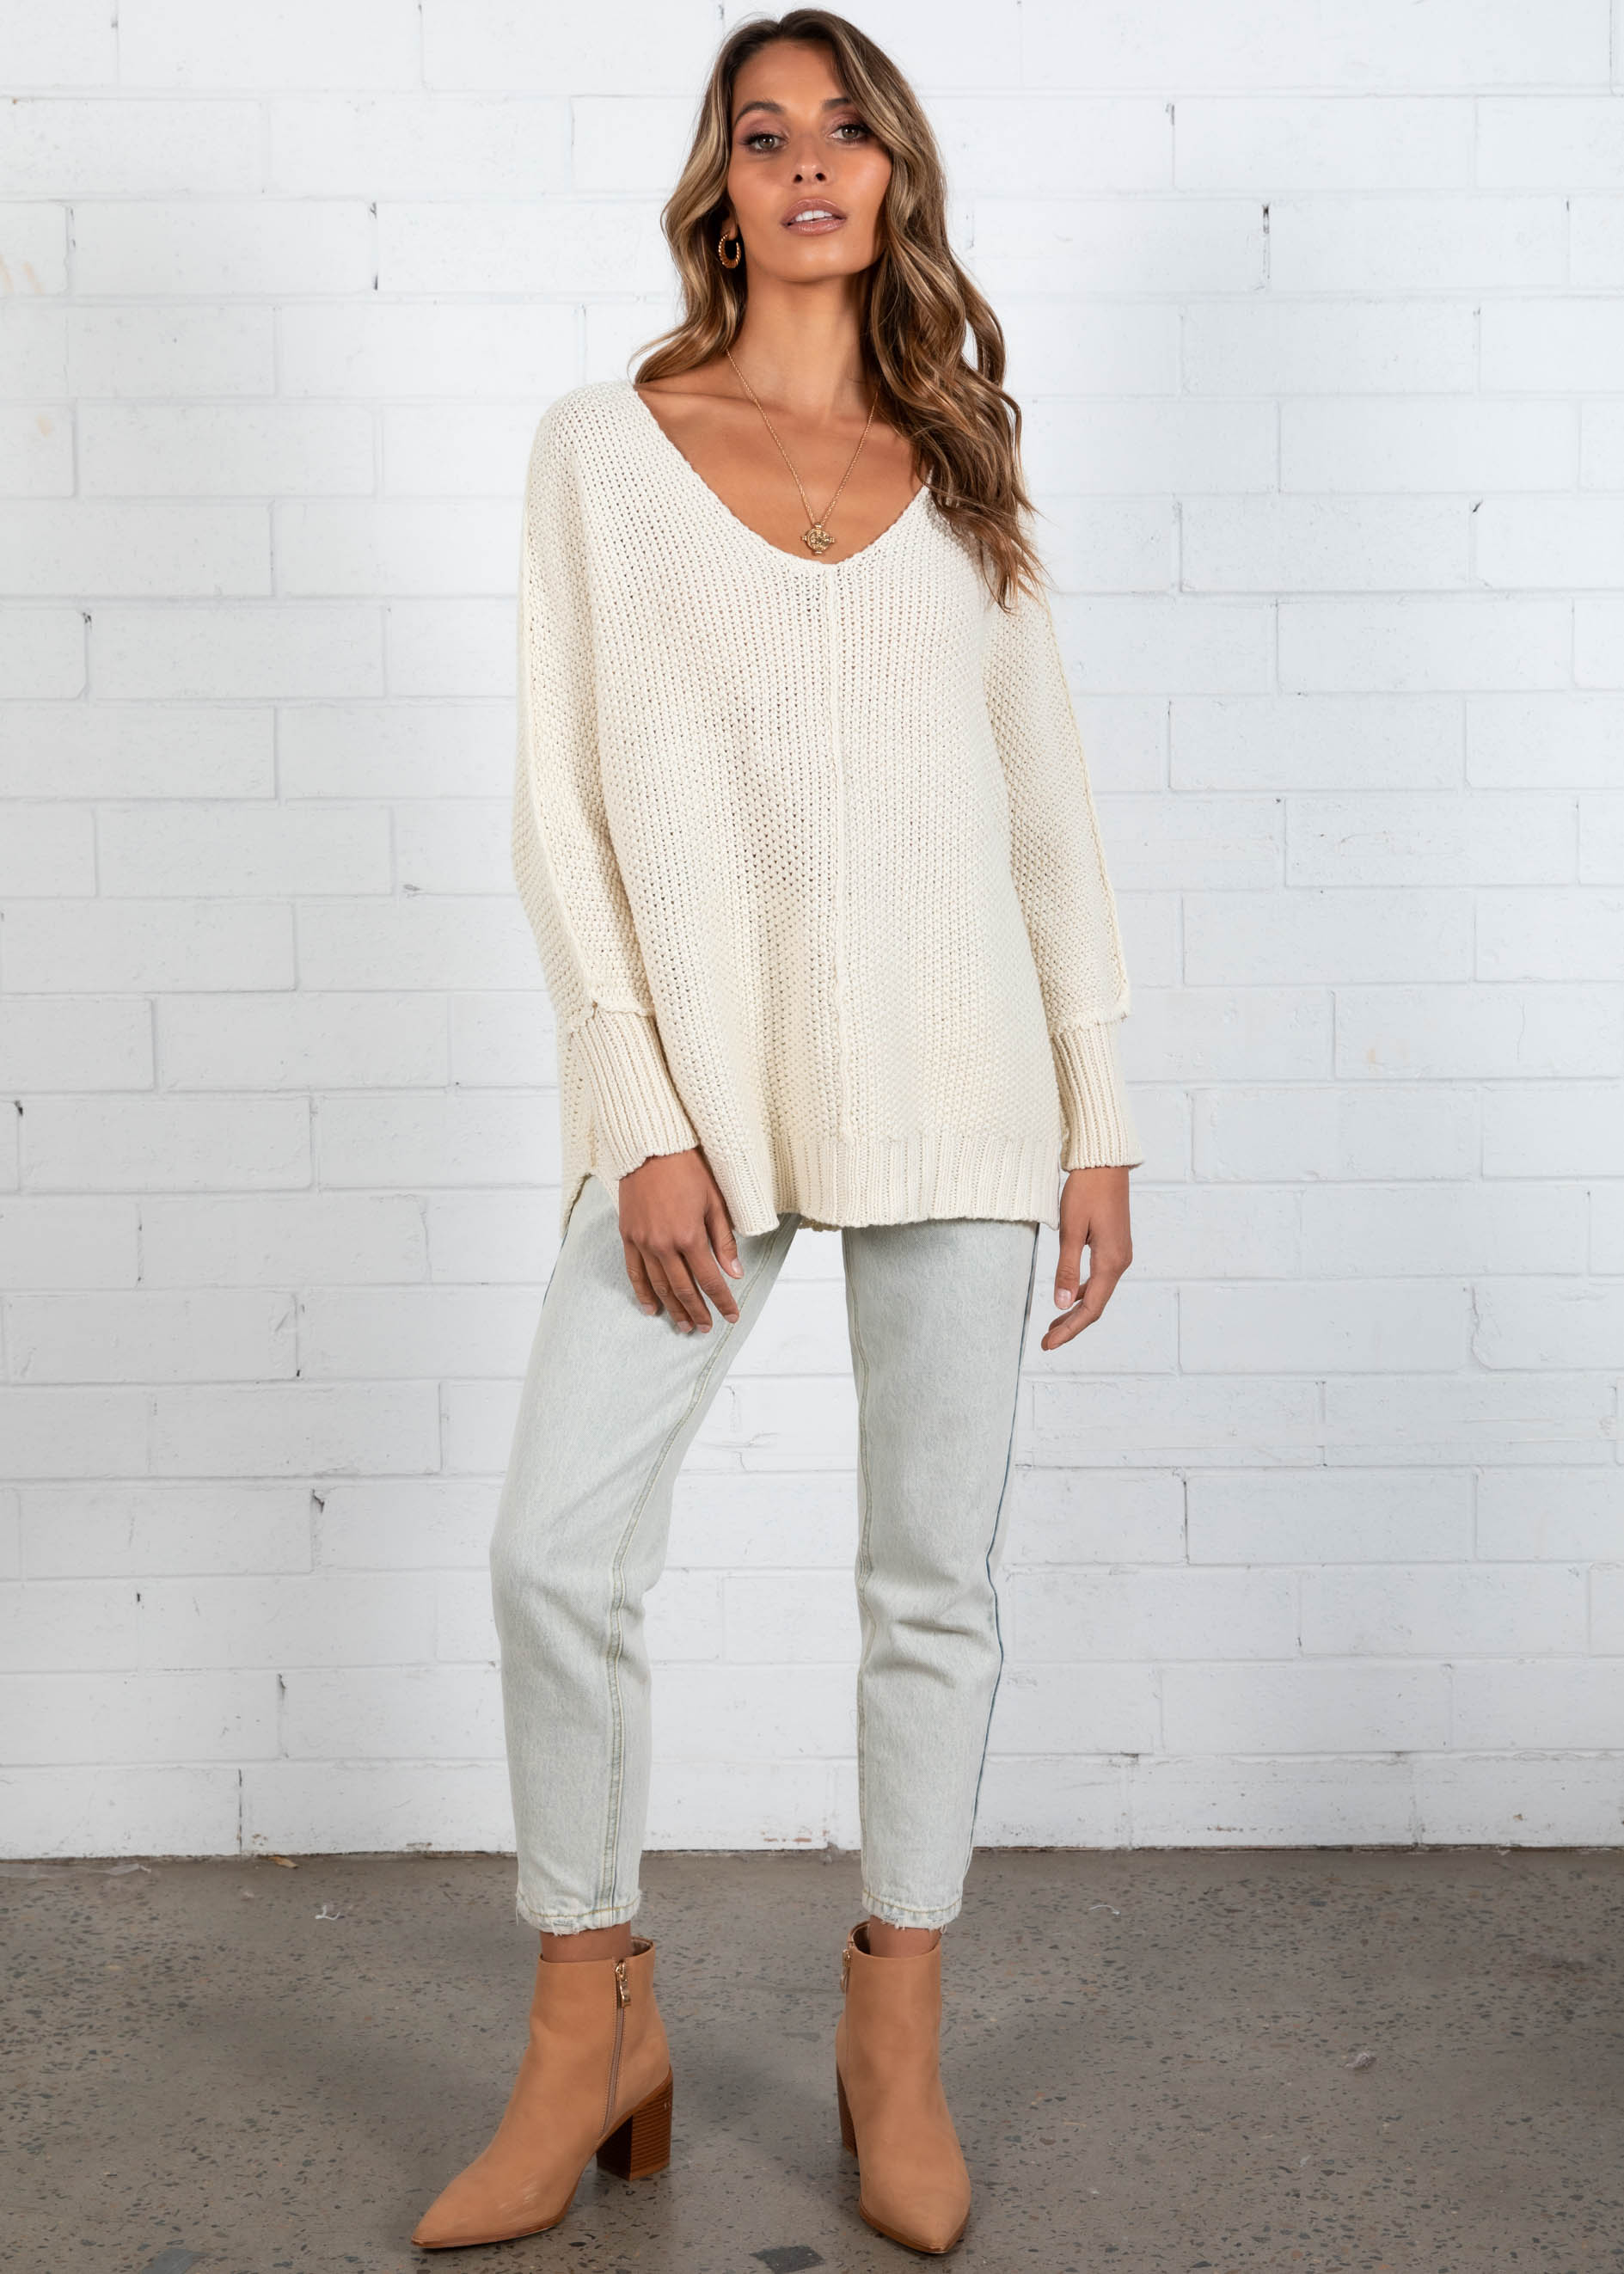 Saffino Sweater - Beige